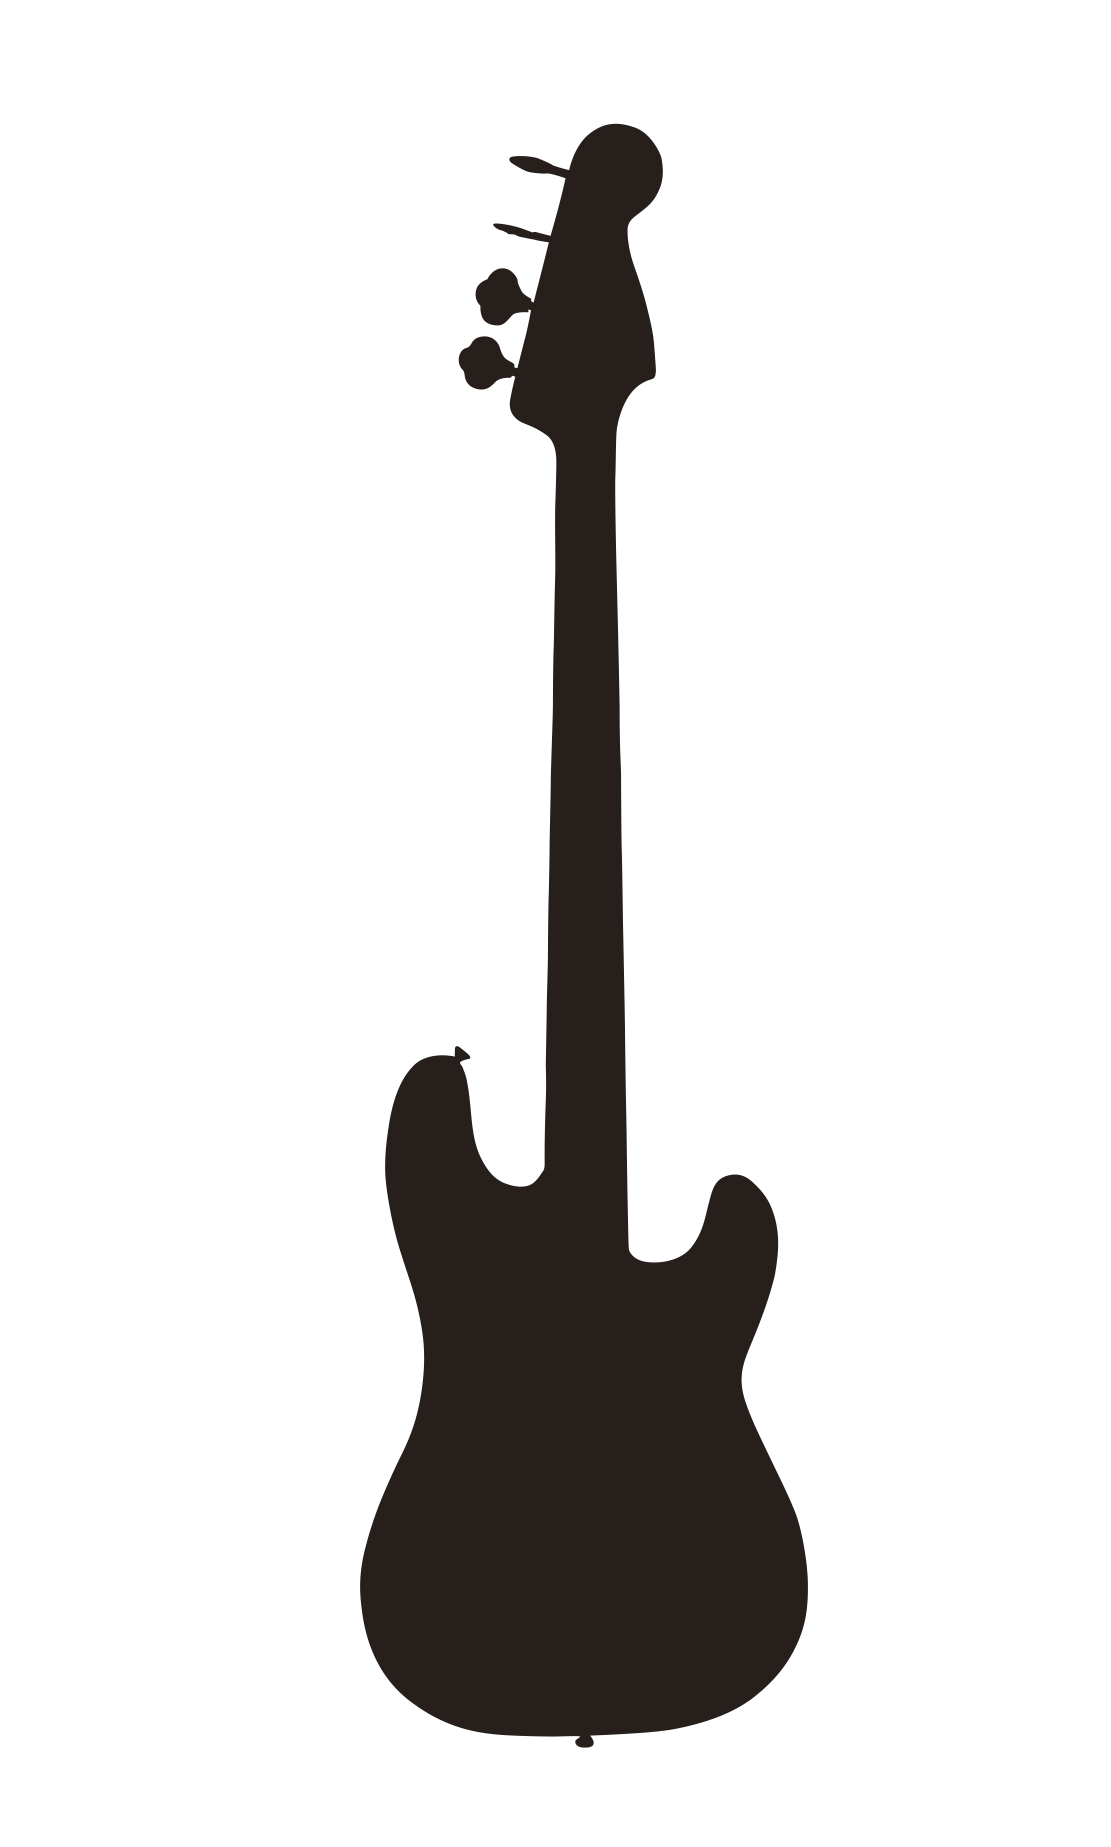 file guitar silhouette png wikimedia commons fiddle player clipart fiddle clipart black and white